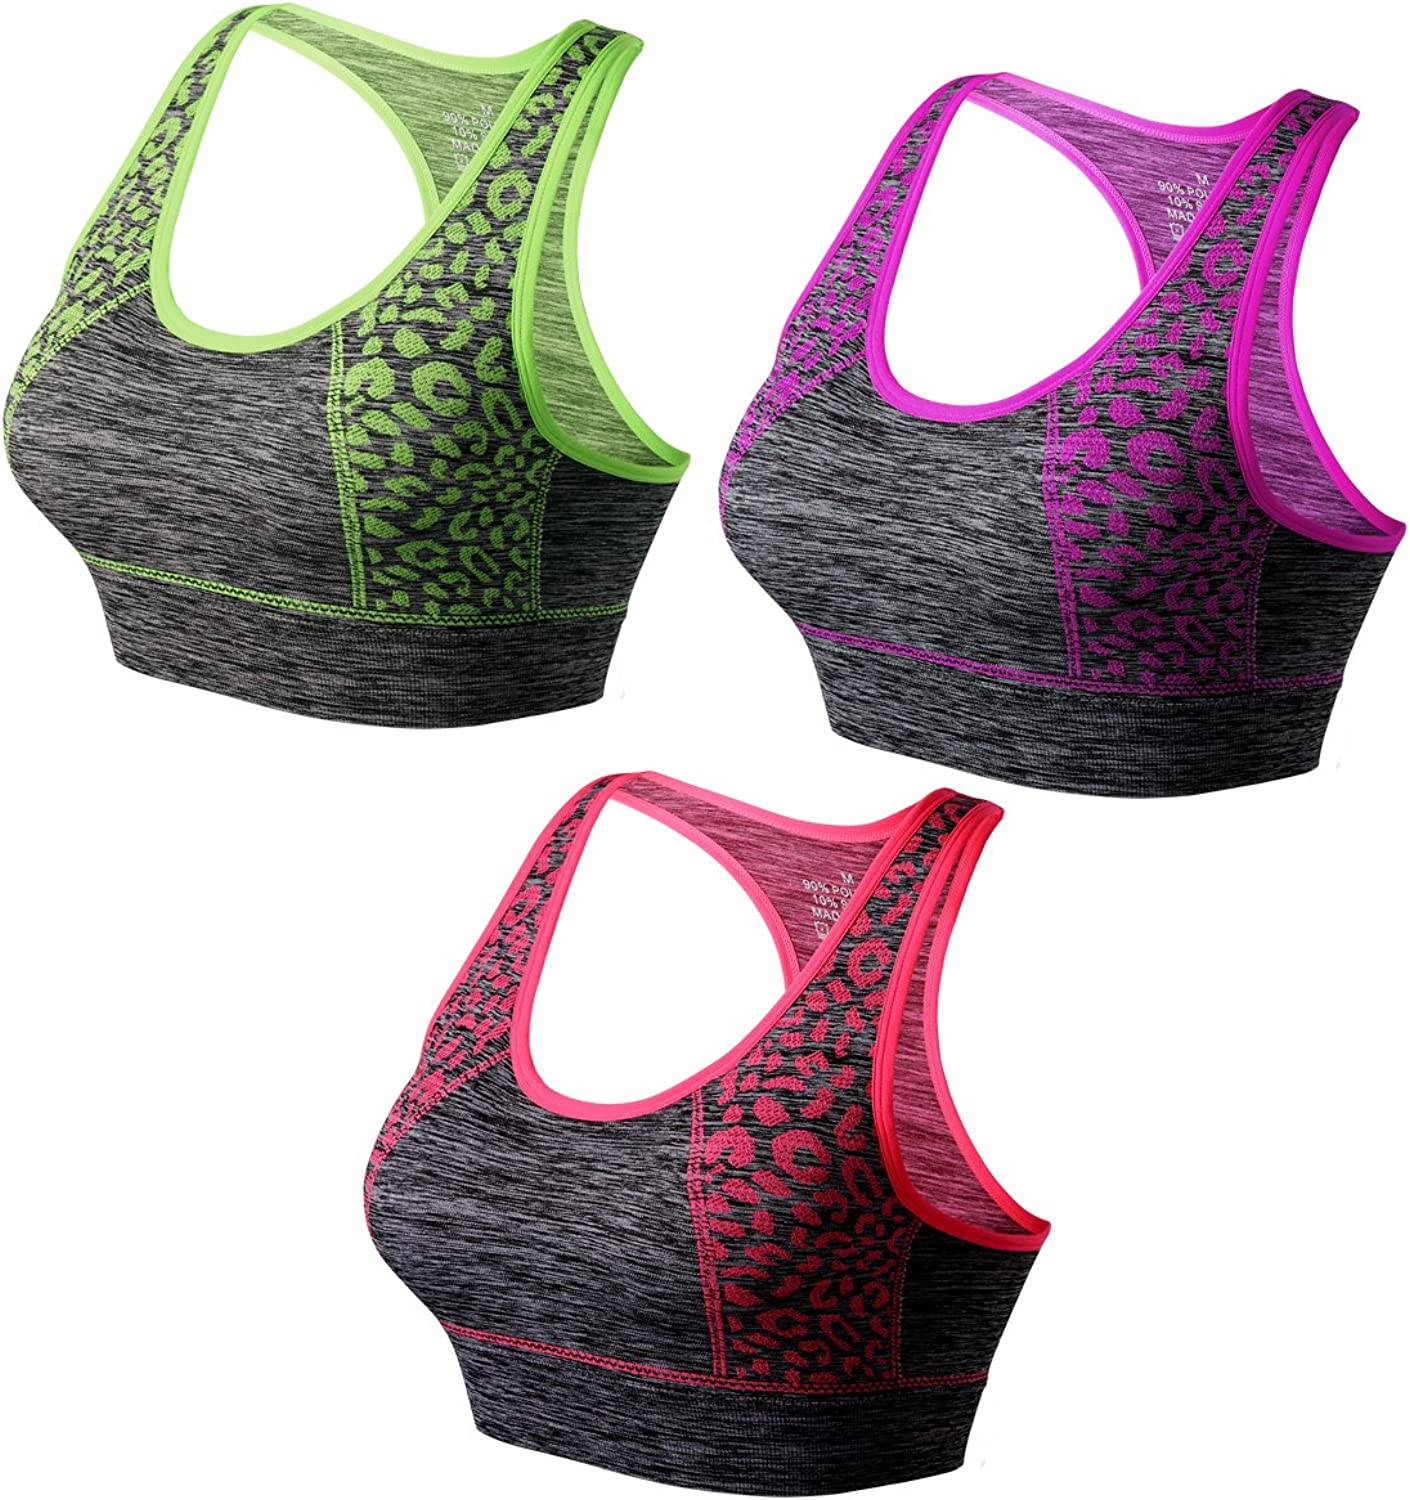 Match Women's Wirefree Padded Racerback Sports Bra for Yoga Workout Gym Activewear  007